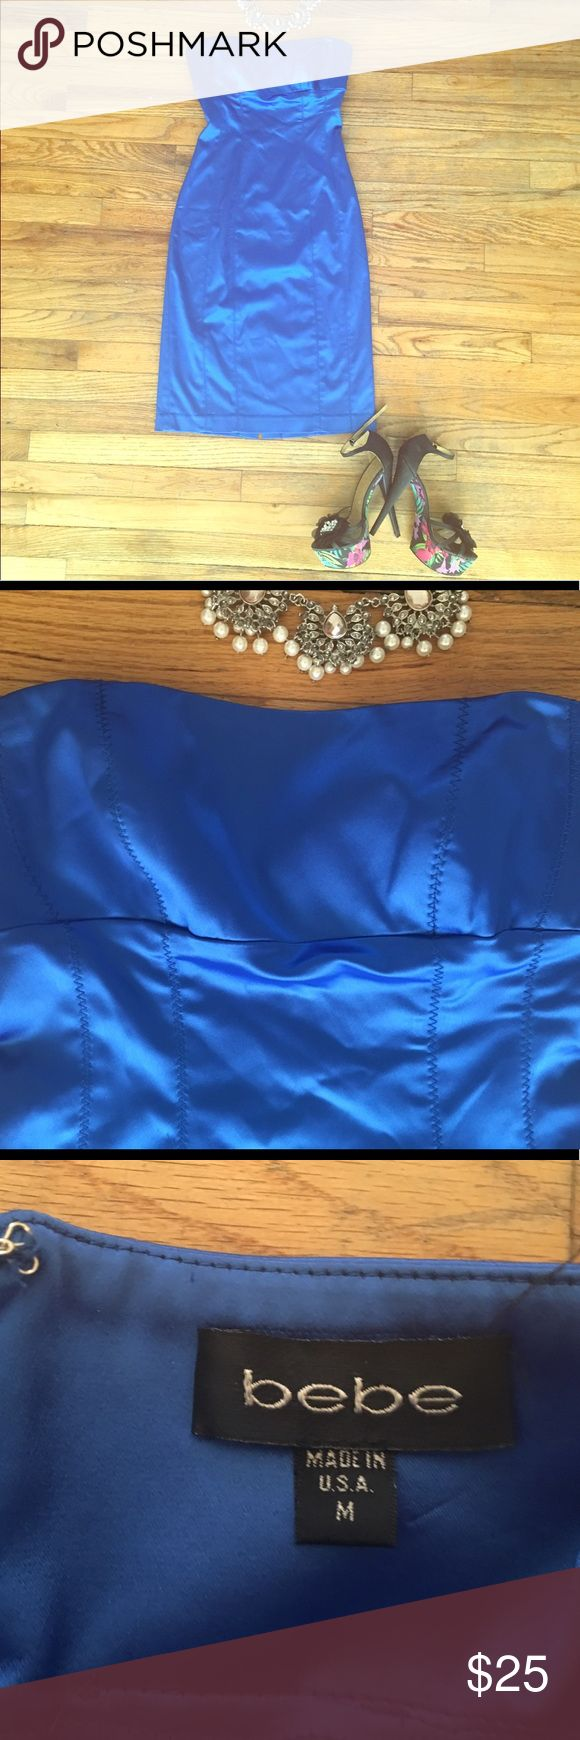 Vibrant blue Bebe club or cocktail dress 😍 The pics don't do it justice! I got so many compliments on this dress at the club in Las Vegas. It's a really vivid royal blue with some shine to the fabric- perfect for going out. It's strapless, but the cups are molded giving it just enough shape and support. Seriously, this dress hugs ever curve and makes you feel sexy af. There are a couple of tiny pull in the fabric on the back, as pictured in the 4th photo. Totally not noticeable on. In this…